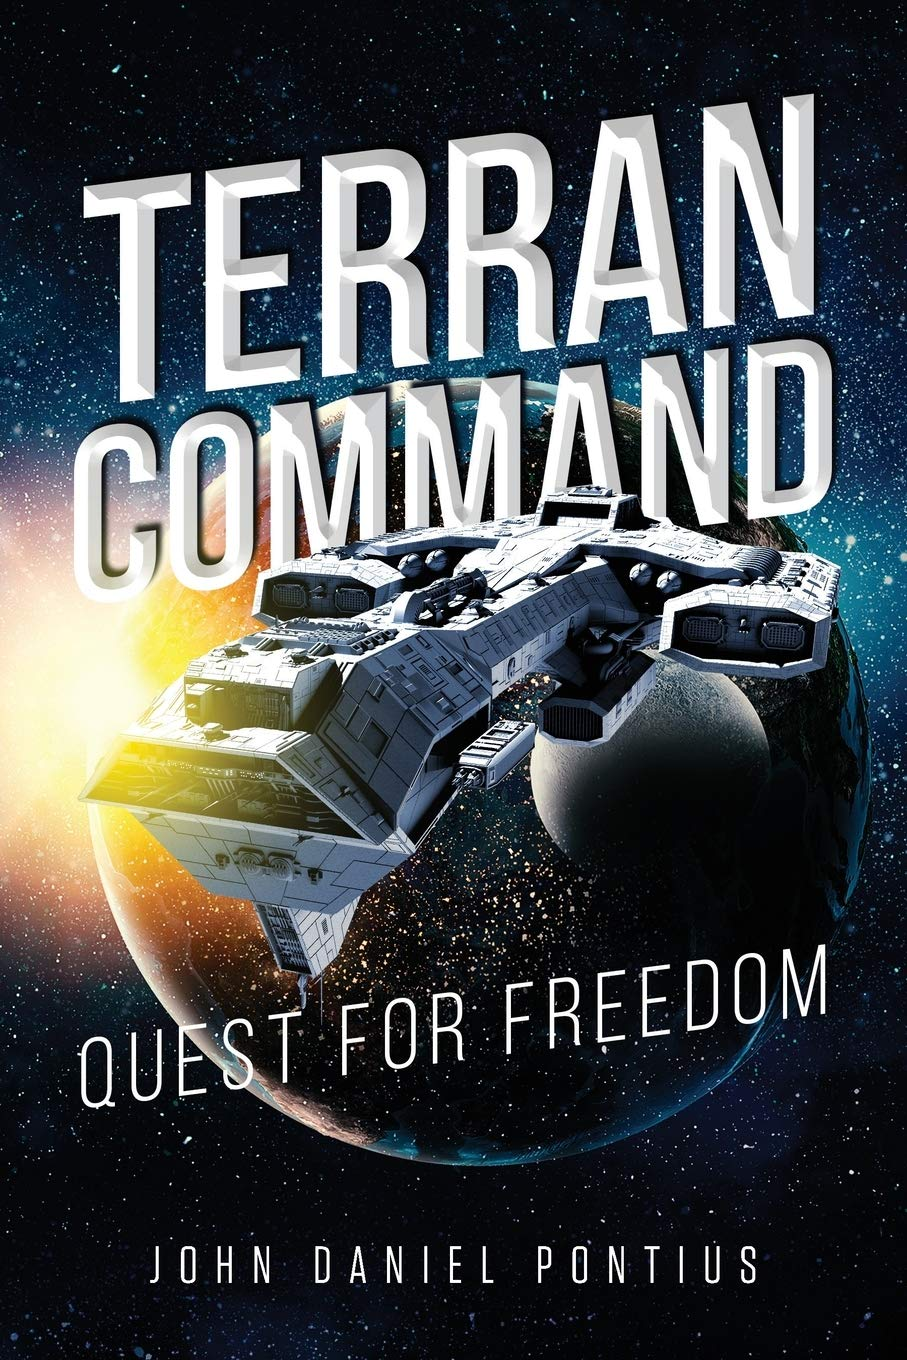 Sci-Fi Novel Commands Quest for Freedom